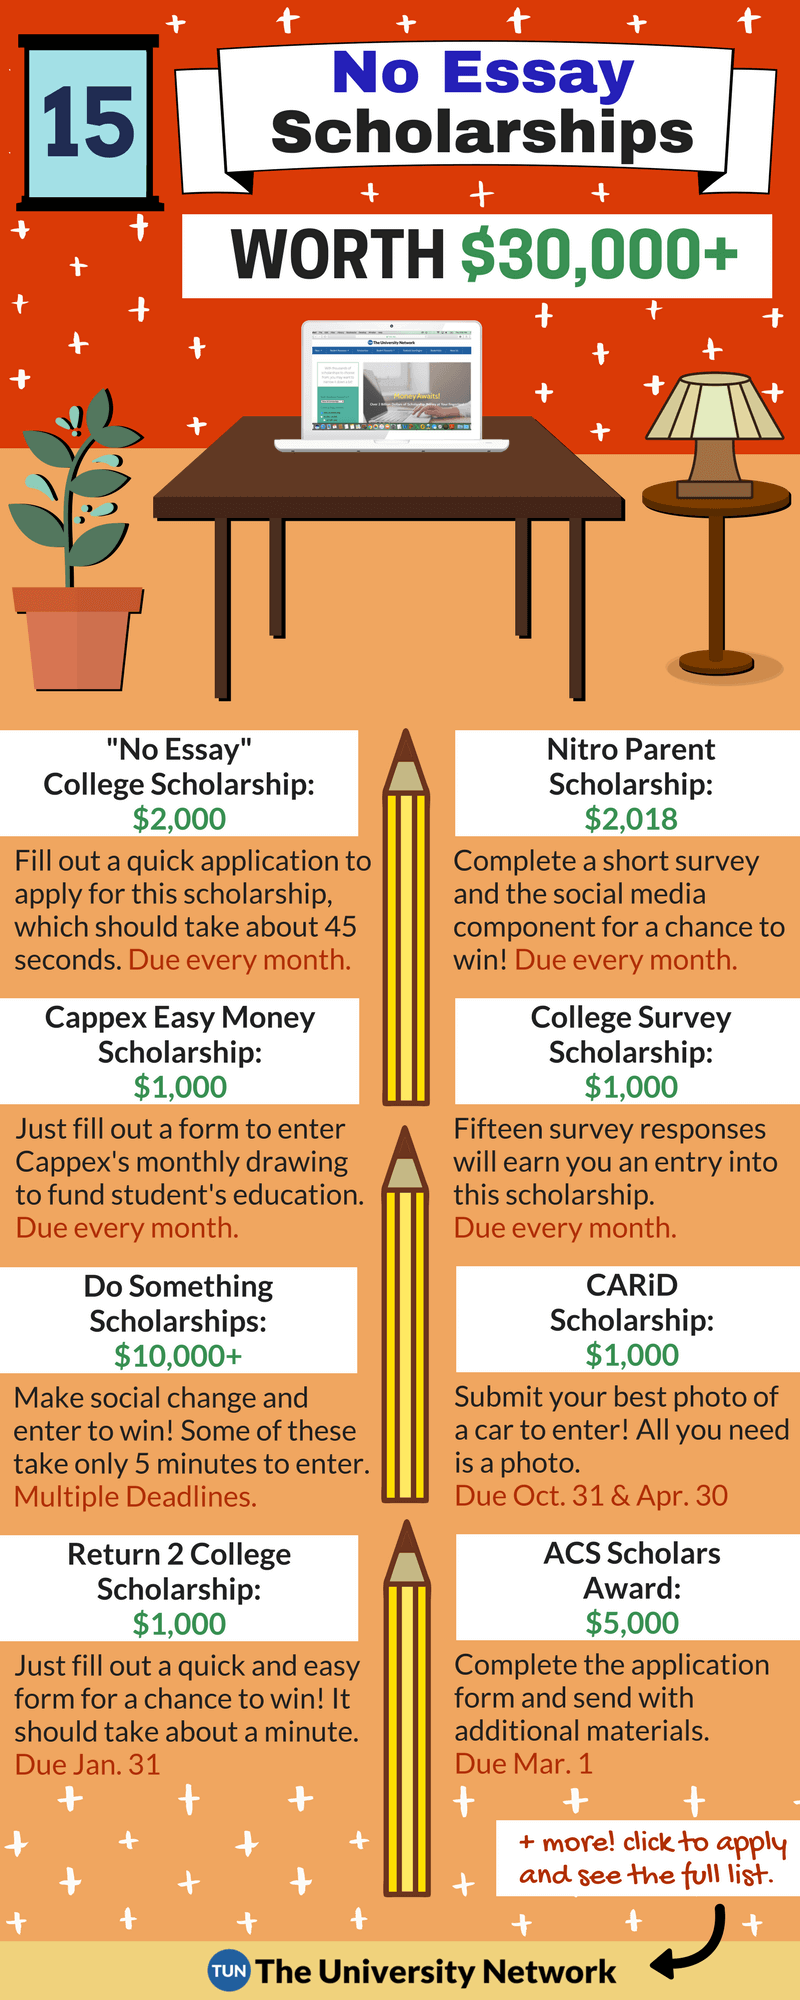 011 No Essay Scholarships For College Students Awful 2019 Full